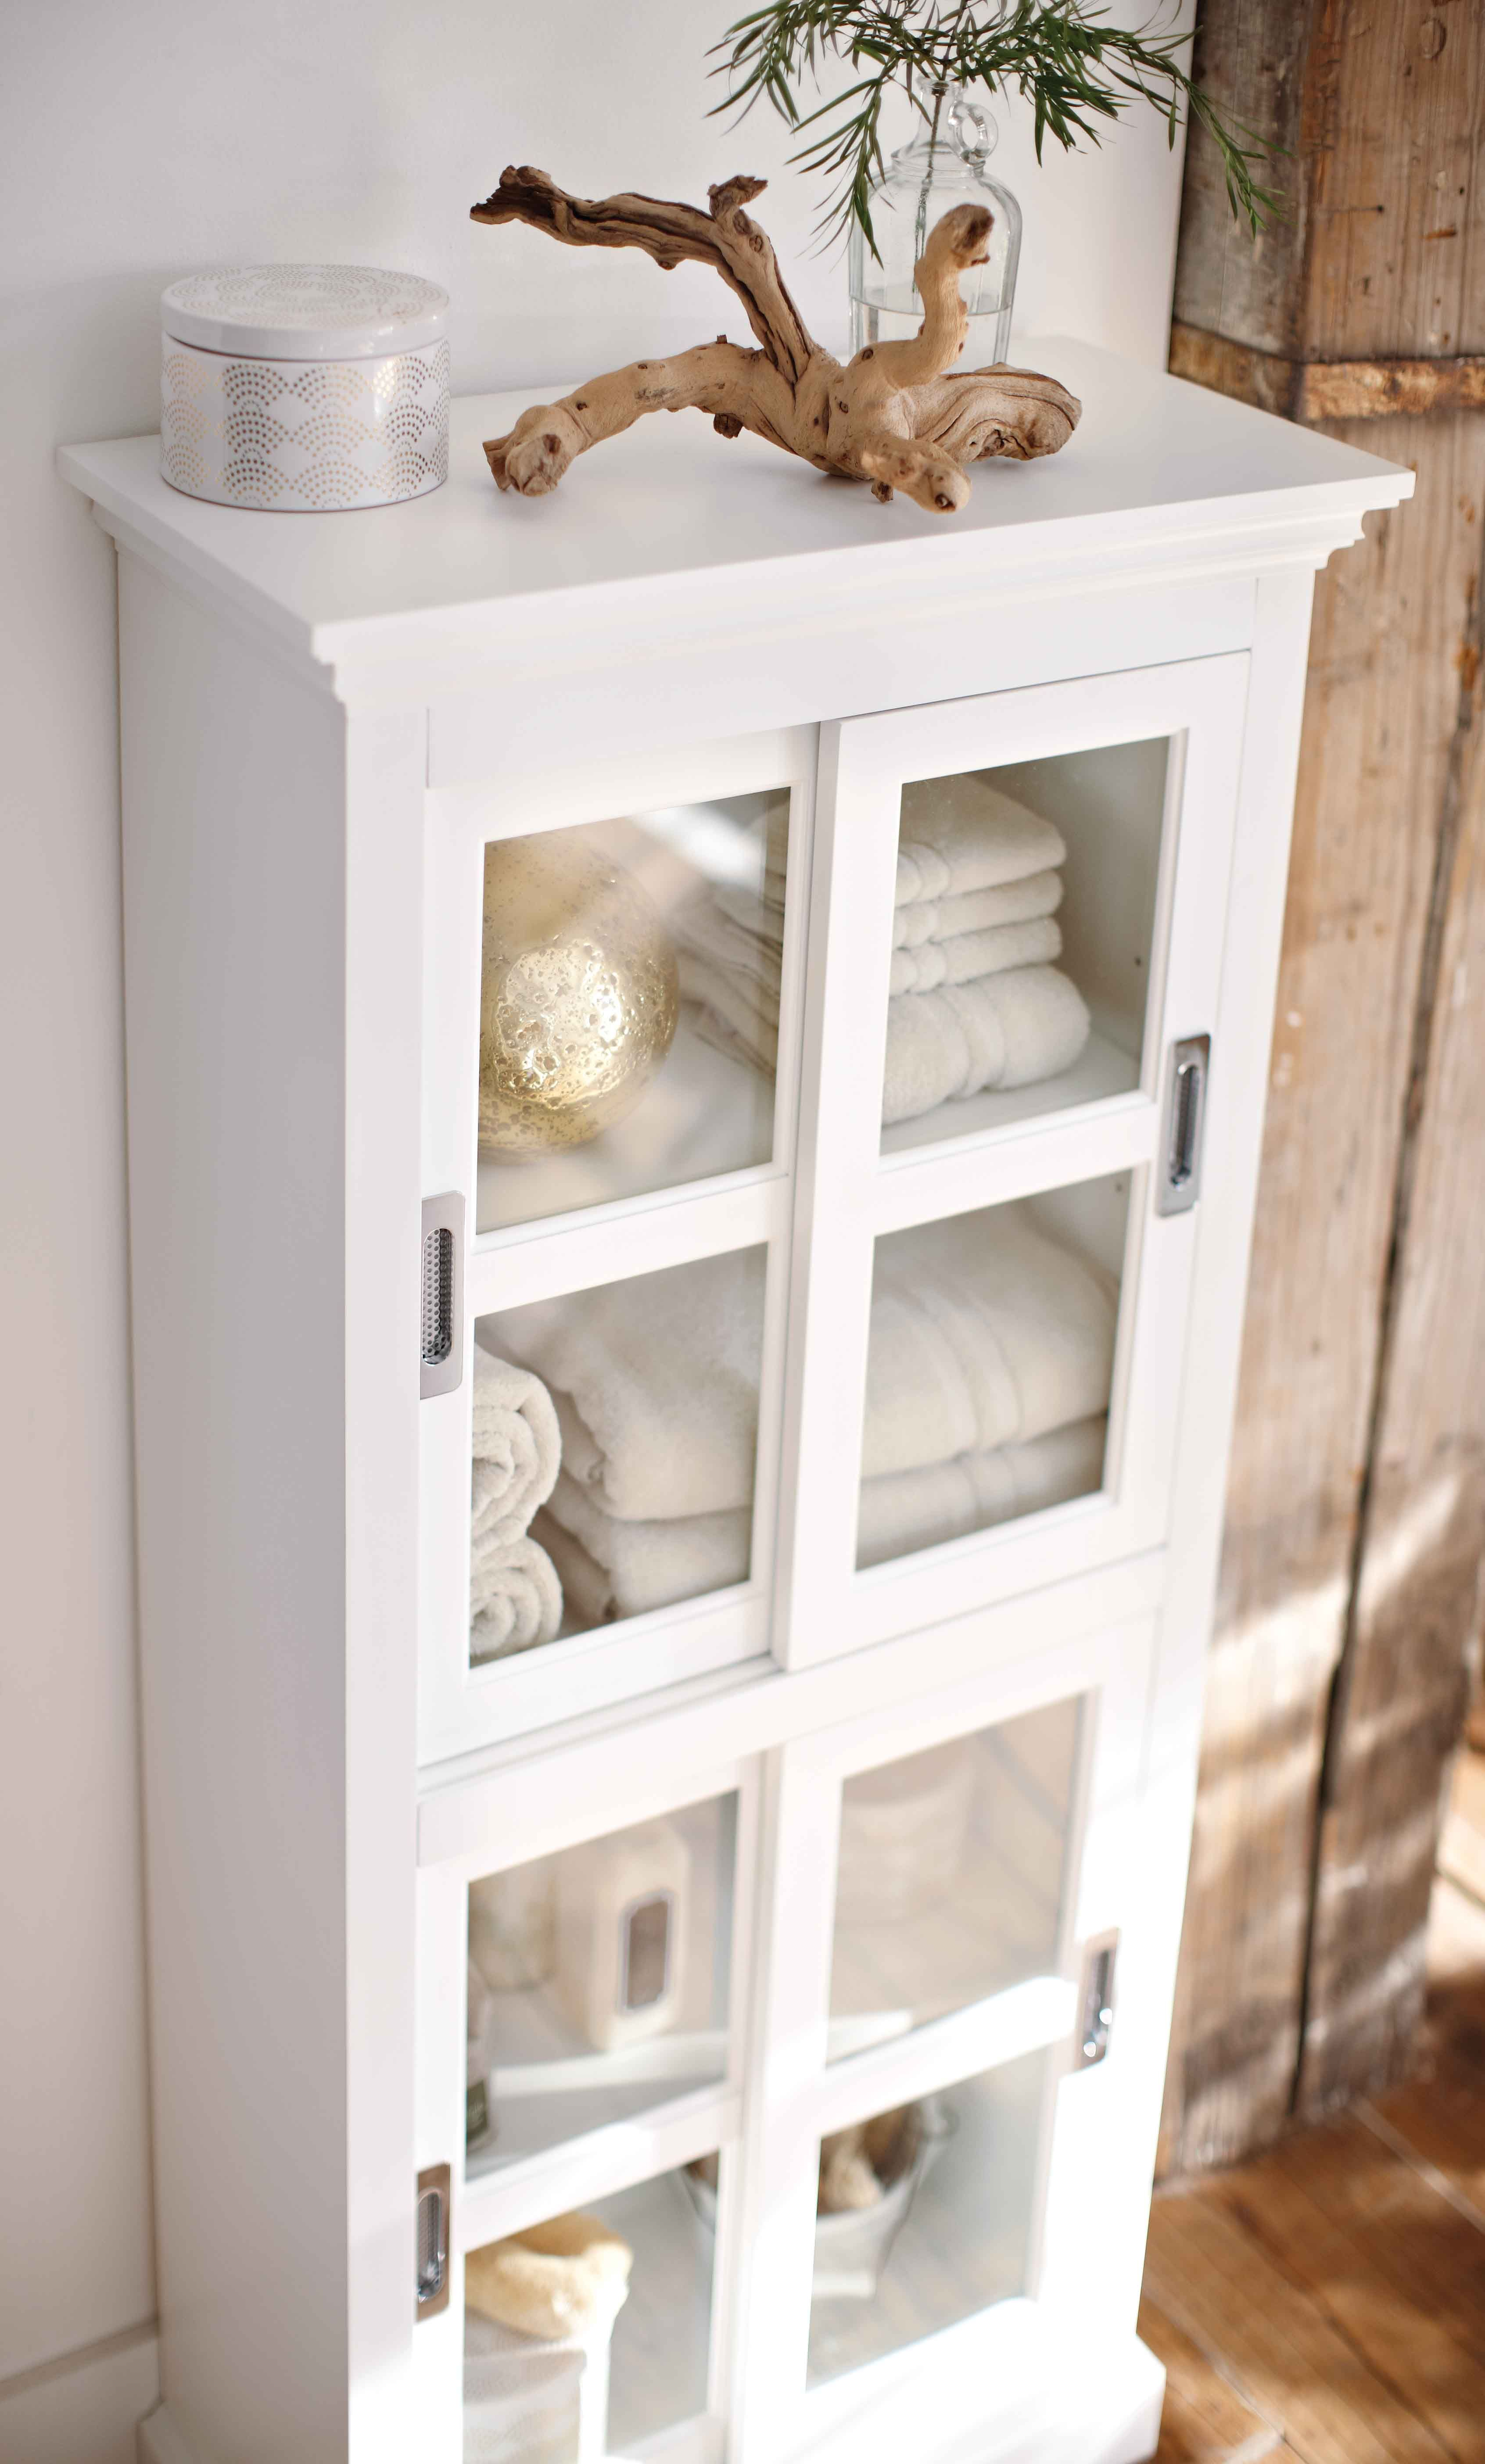 Choose This Linen Cabinet As A Convenient Little Solution For Storage In The Bathroom Homedecor Bathroom Furniture Storage Storage Cabinets Bathroom Furniture [ 5616 x 3384 Pixel ]